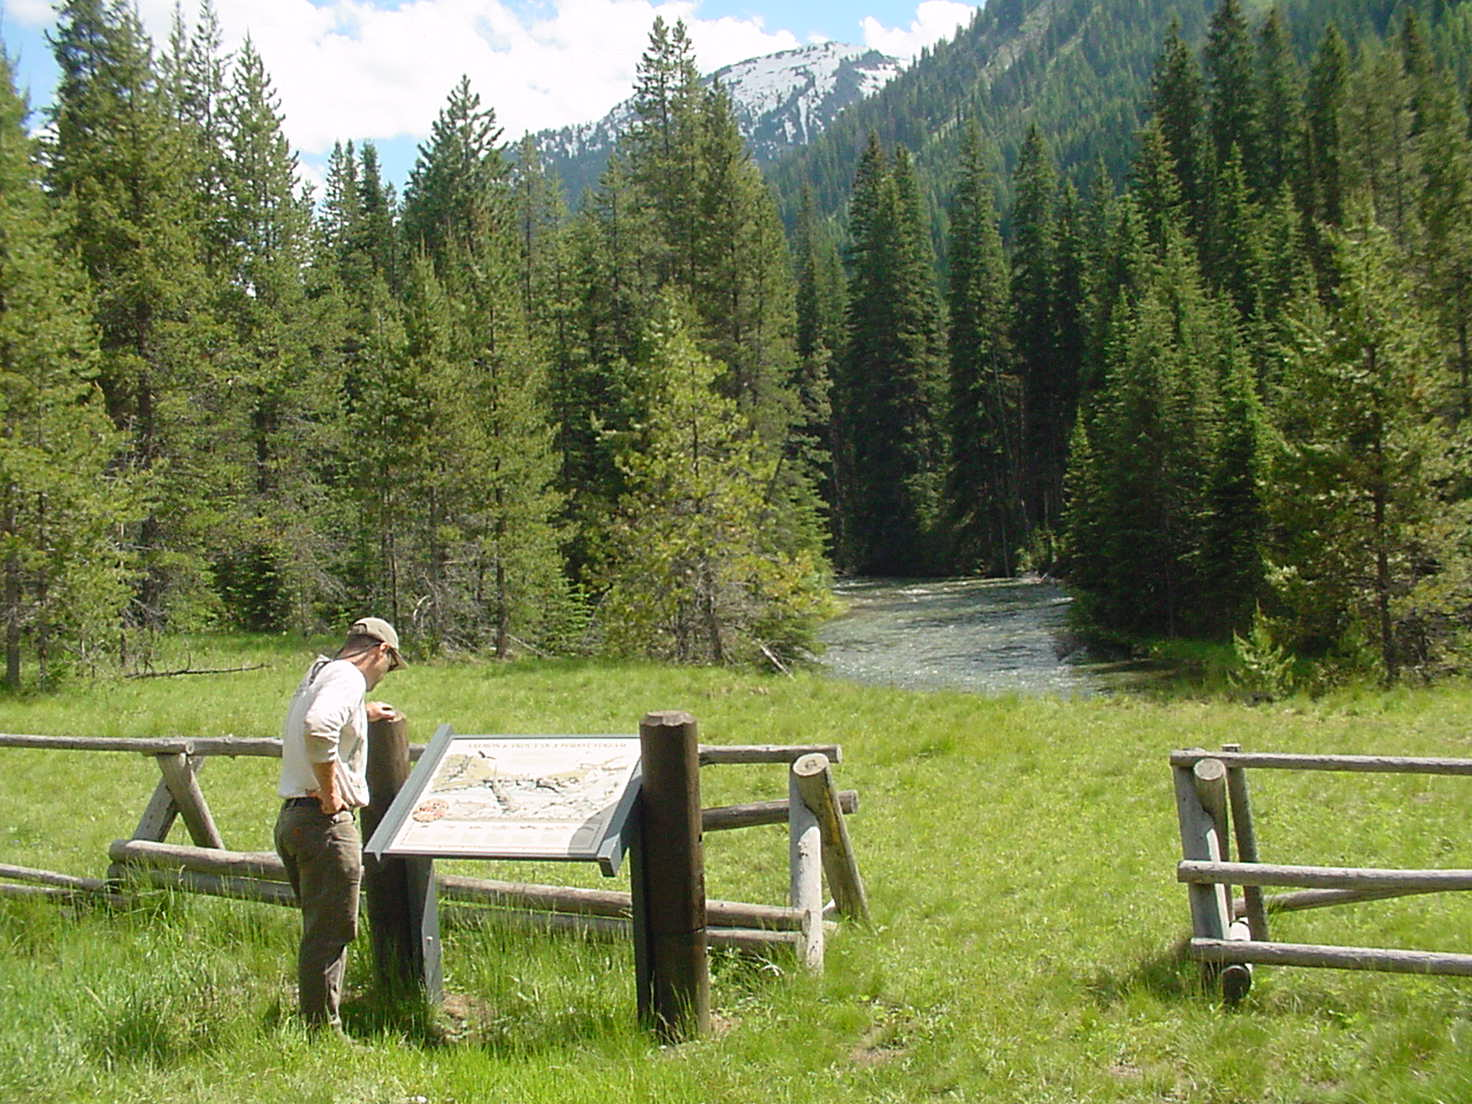 Man reading interpretive sign by a forested mountain stream